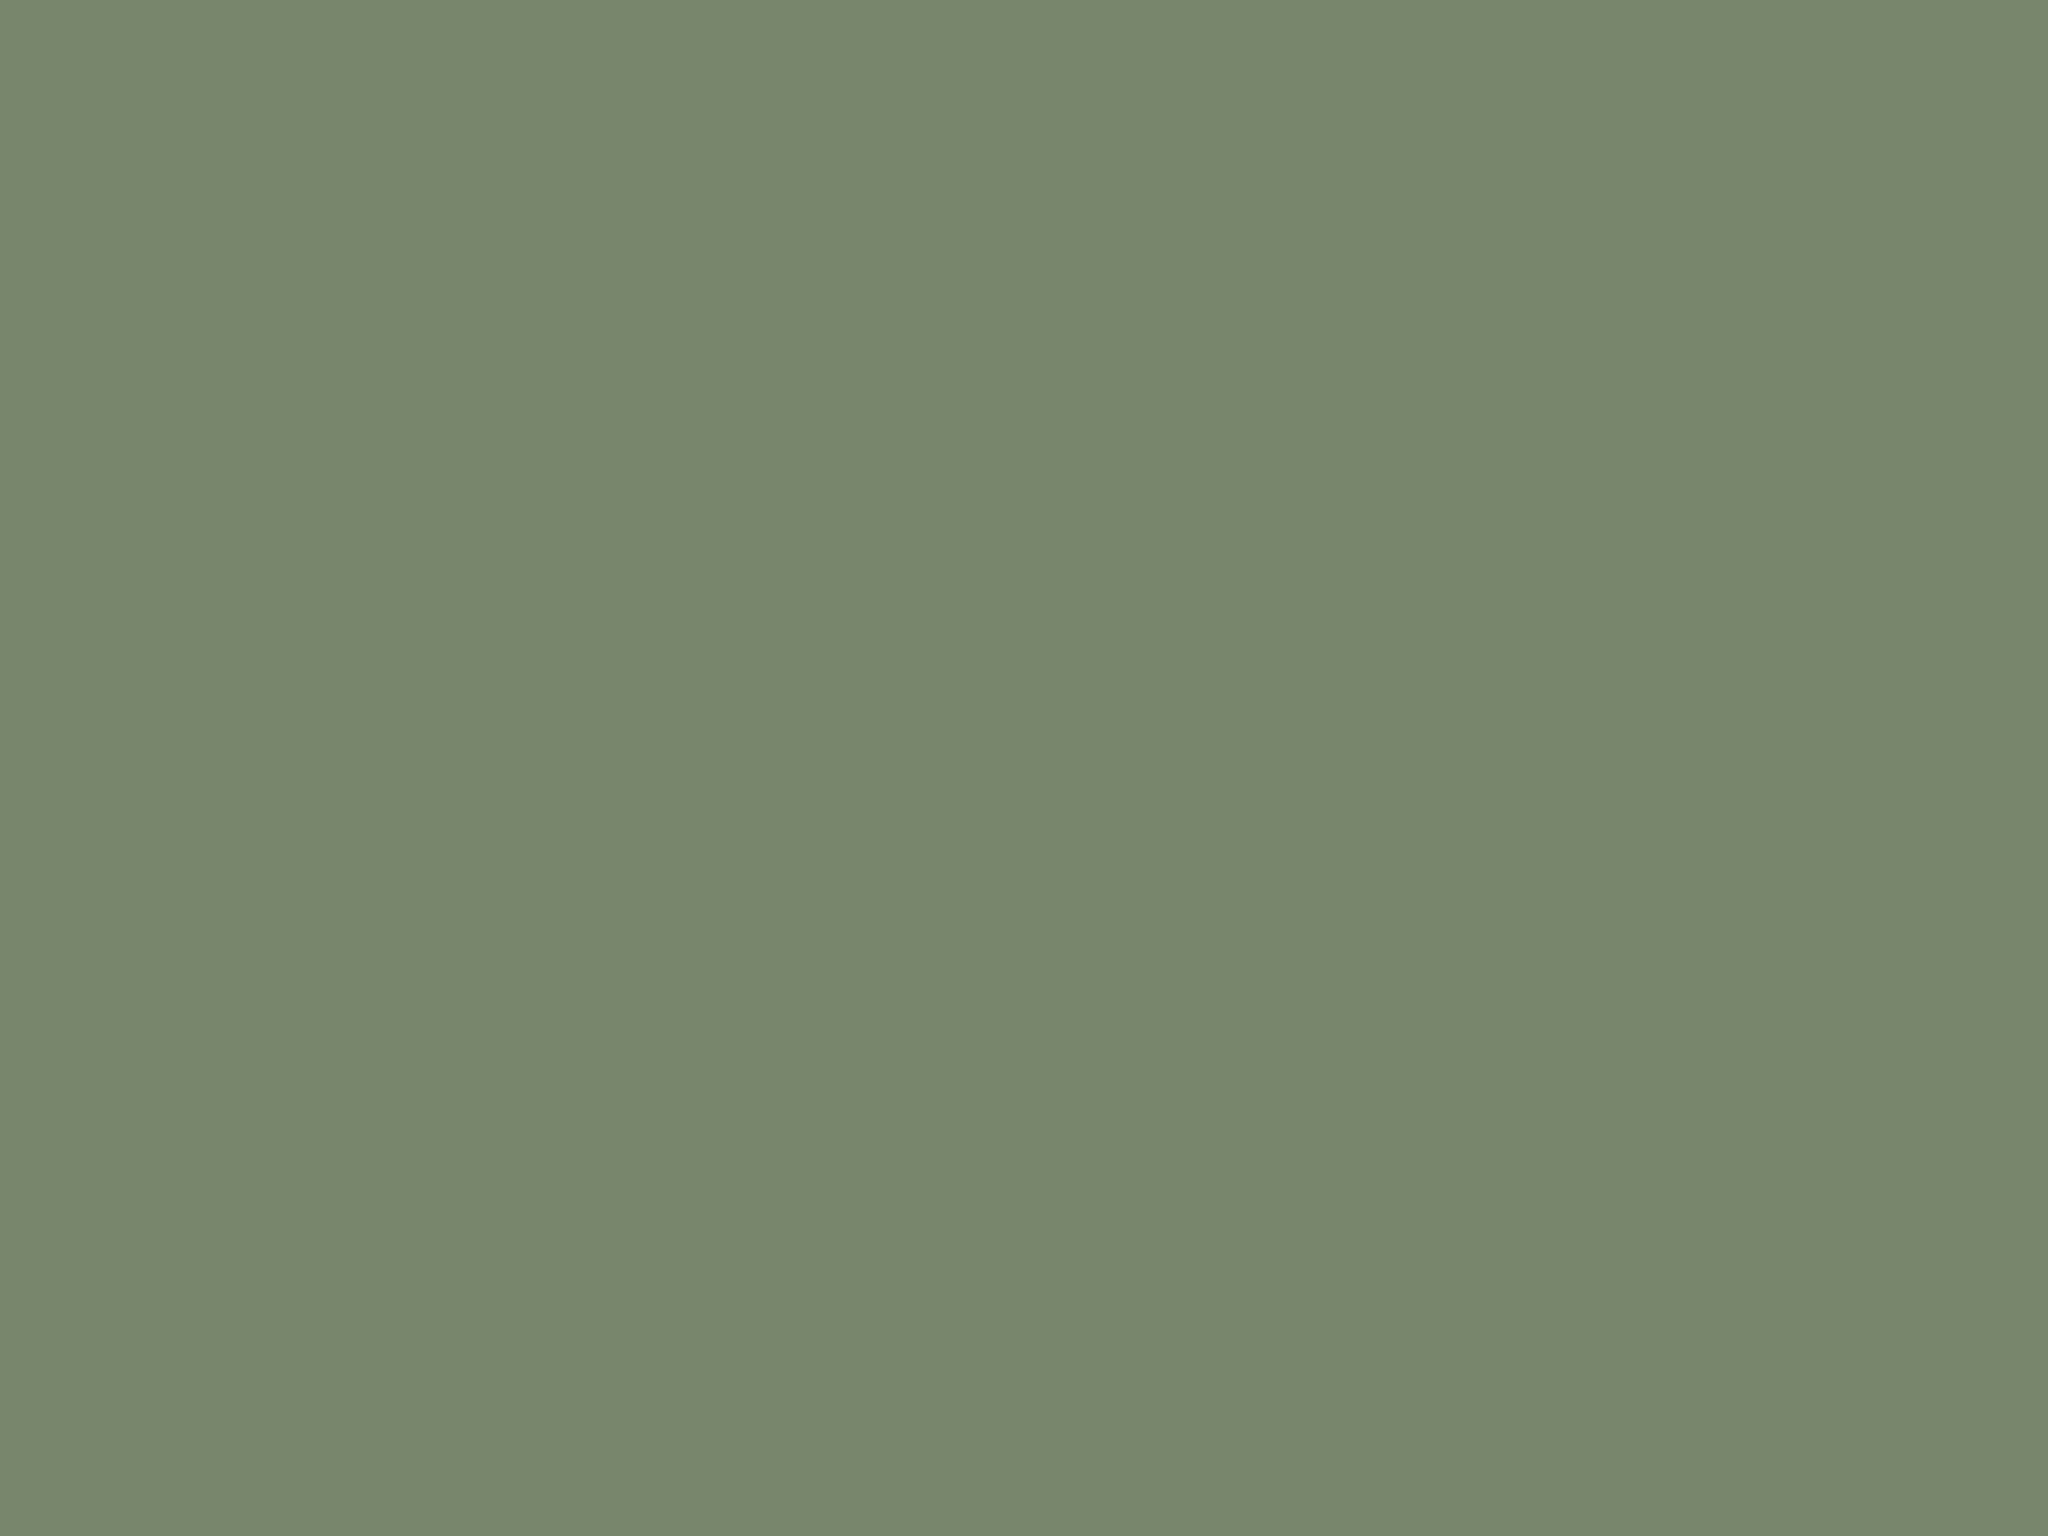 2048x1536 Camouflage Green Solid Color Background